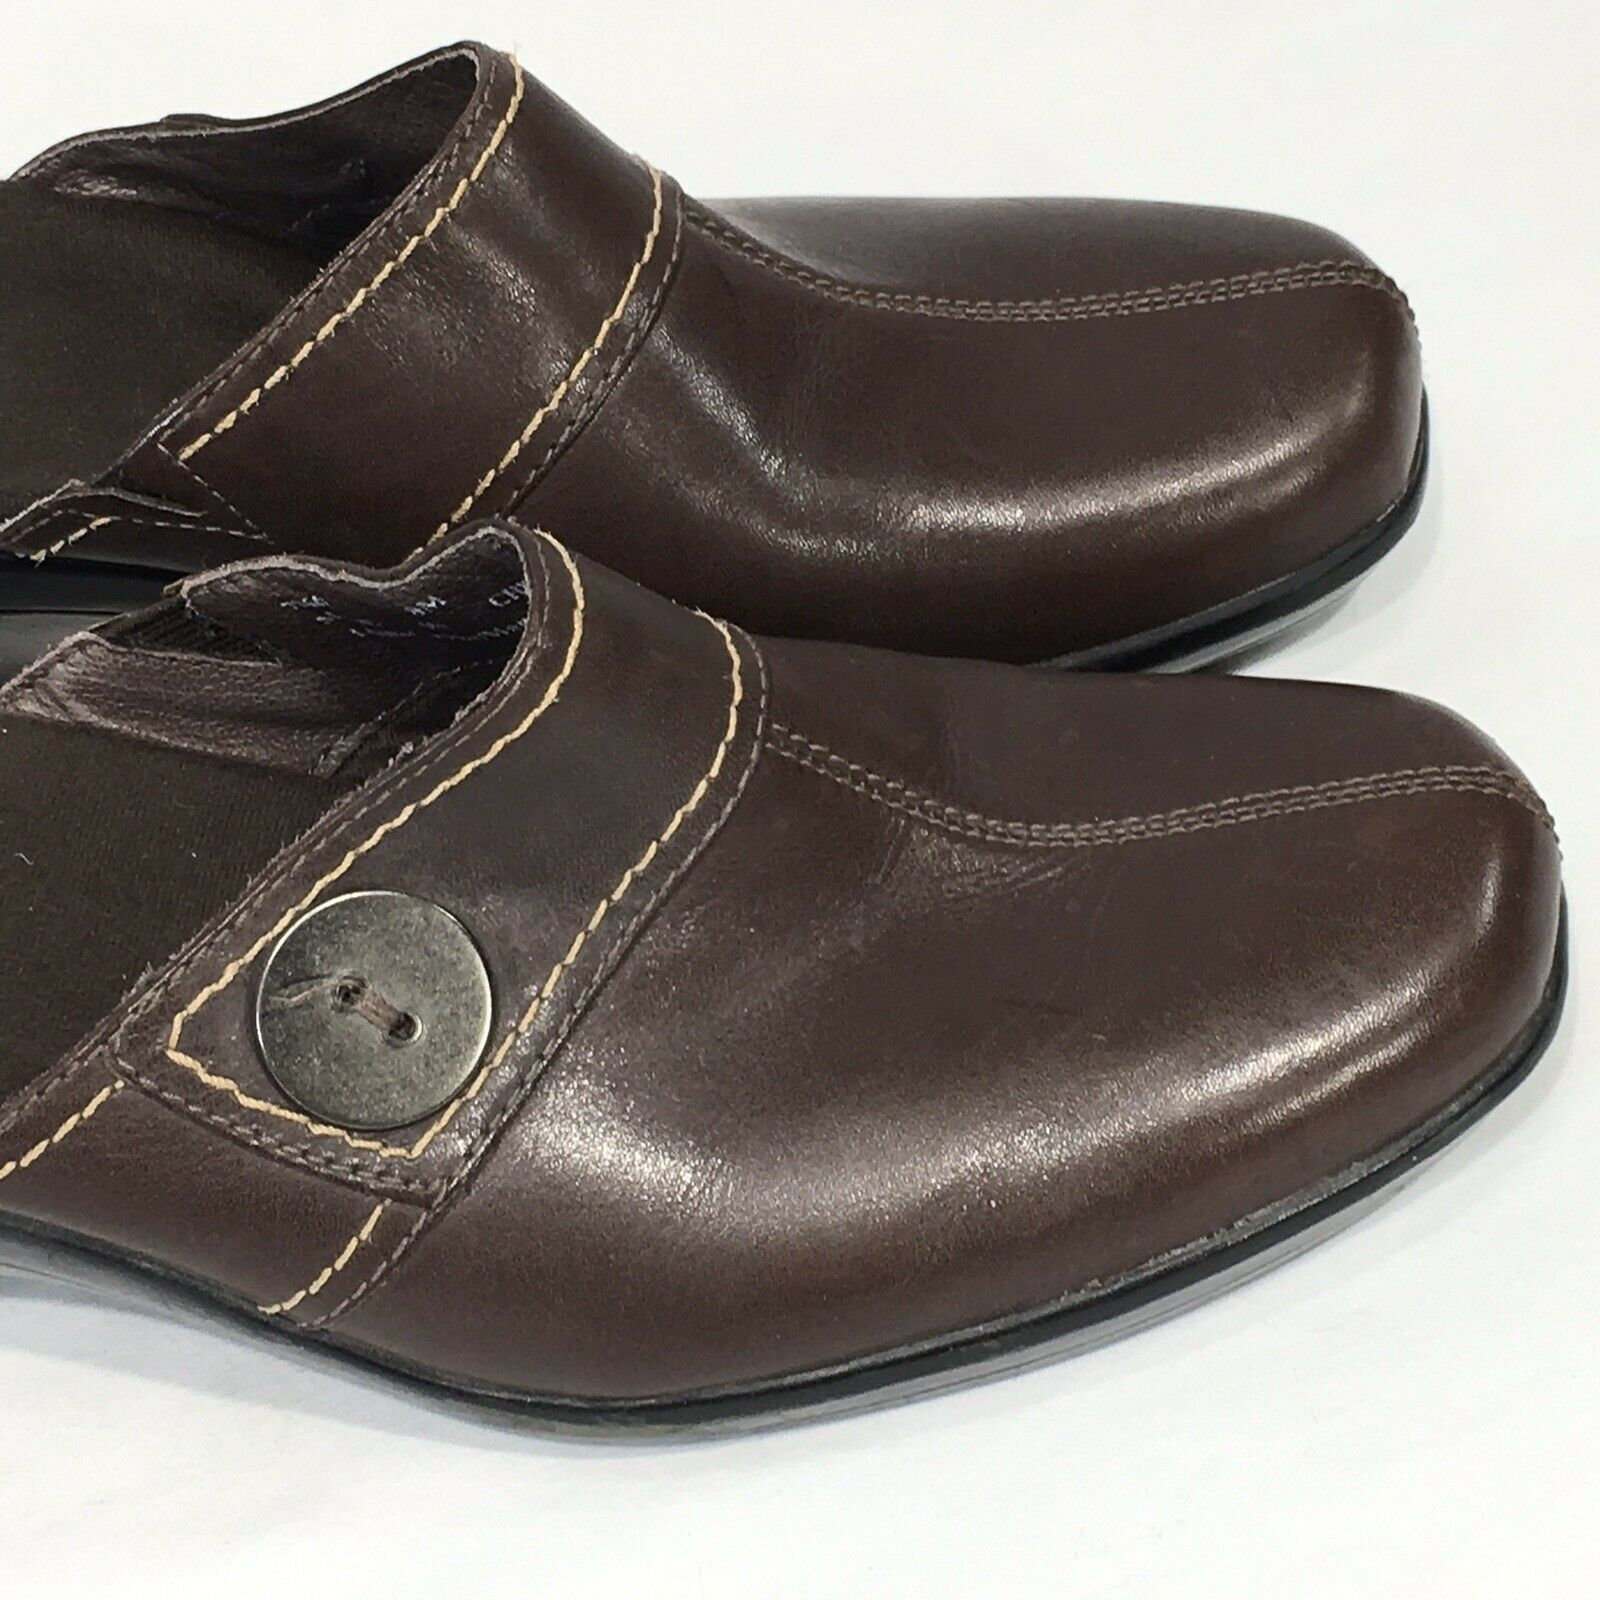 Clarks Clogs Mules shoes Women's Sz 9 M Brown Leather Comfort Slip On